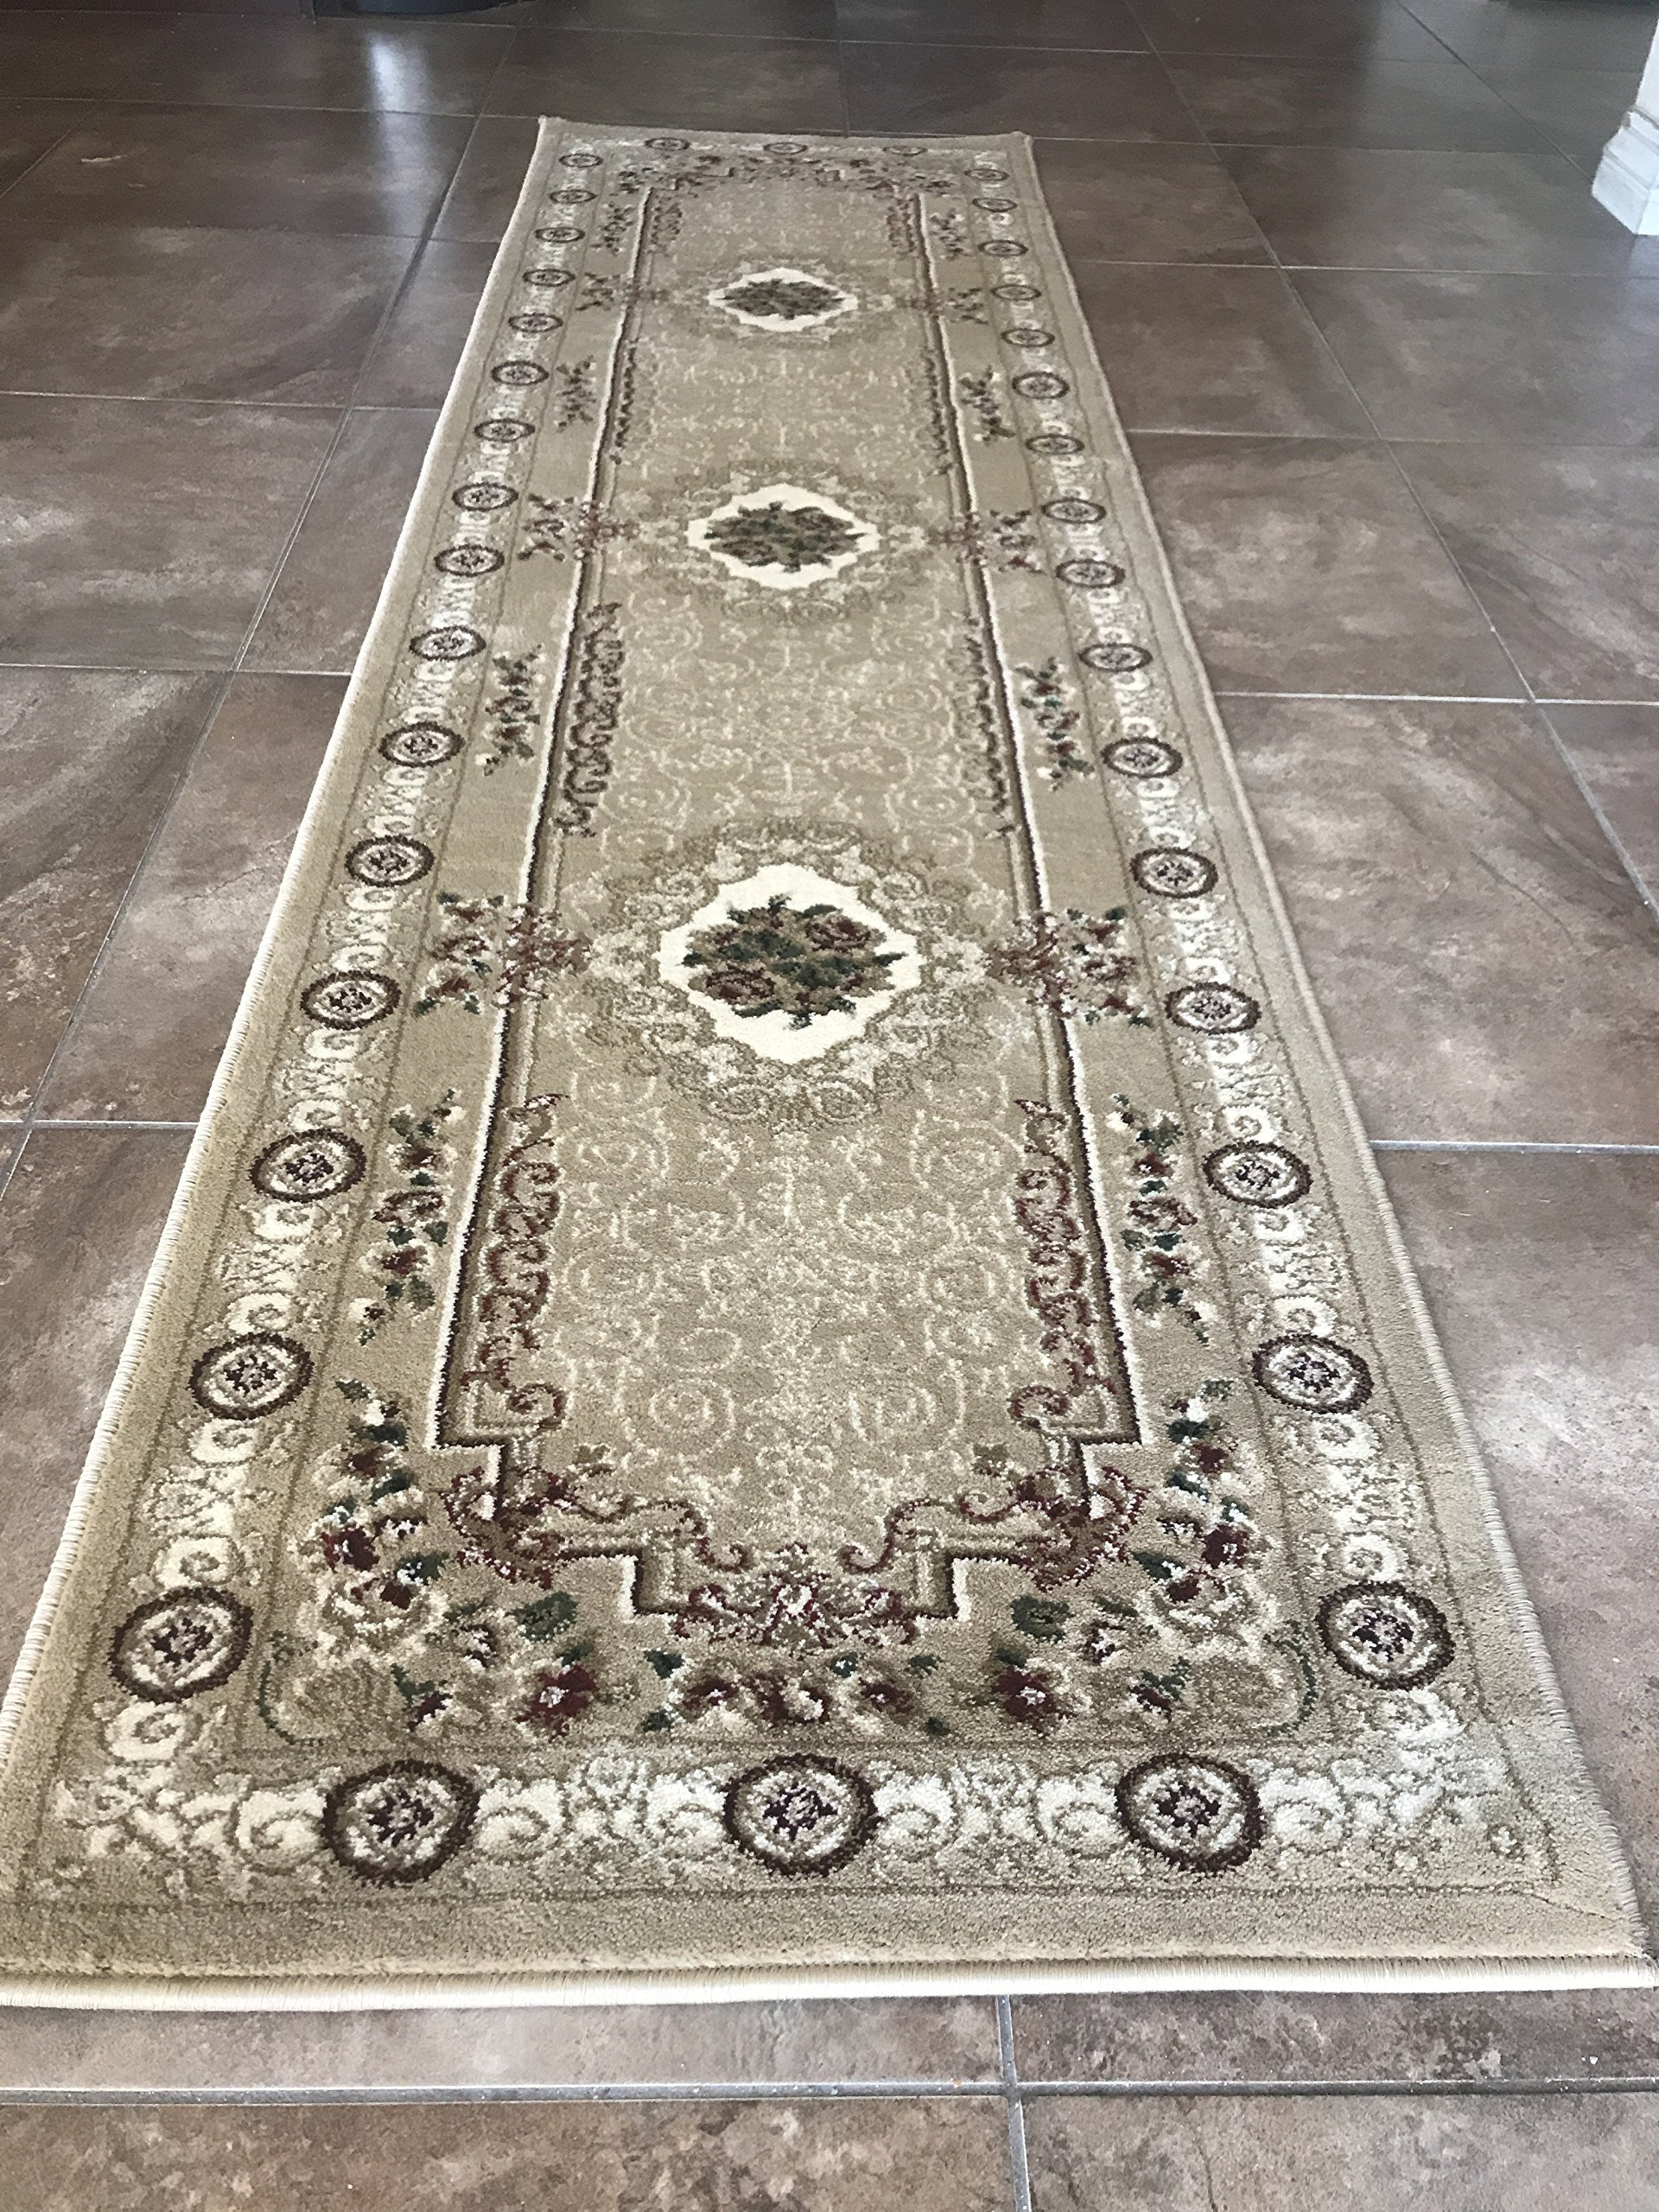 Traditional Runner 500,000 Point Persian Floral Aubusson Beige Green & Burgundy Area Rug Design 403 (2 Feet X 7 Feet 3 Inch) - Traditional Runner Floral Aubusson Area Rug Beige ( 2 Feet X 7 Feet 3 Inch) Quality,high density (500,000 point) ,green,burgundy and beige. Easy to clean (stain resistant and soil proof)and very durable. - runner-rugs, entryway-furniture-decor, entryway-laundry-room - A1EoyKuxdCL -